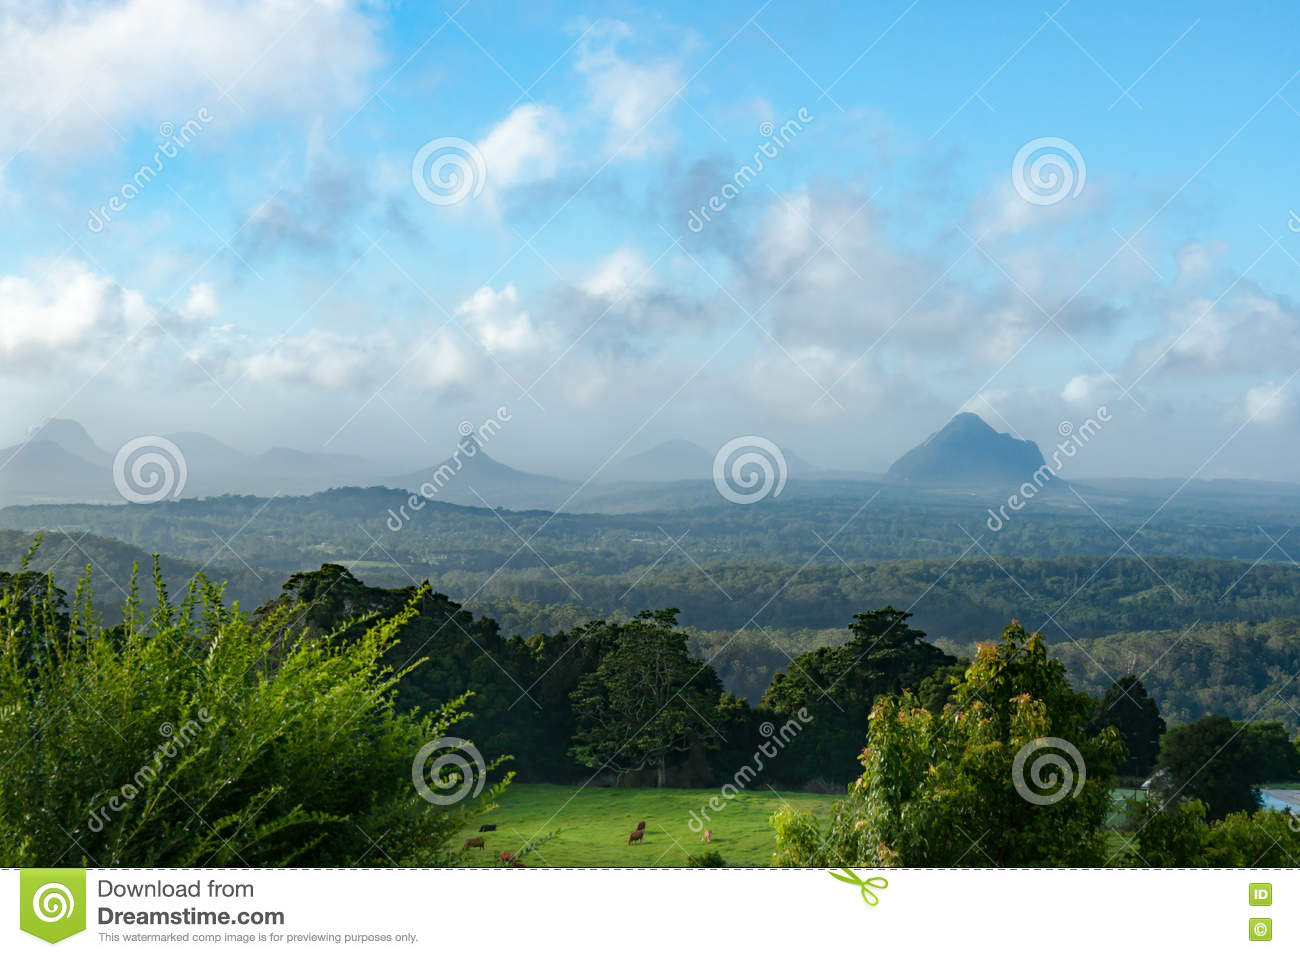 Glasshouse Mountains clipart #14, Download drawings